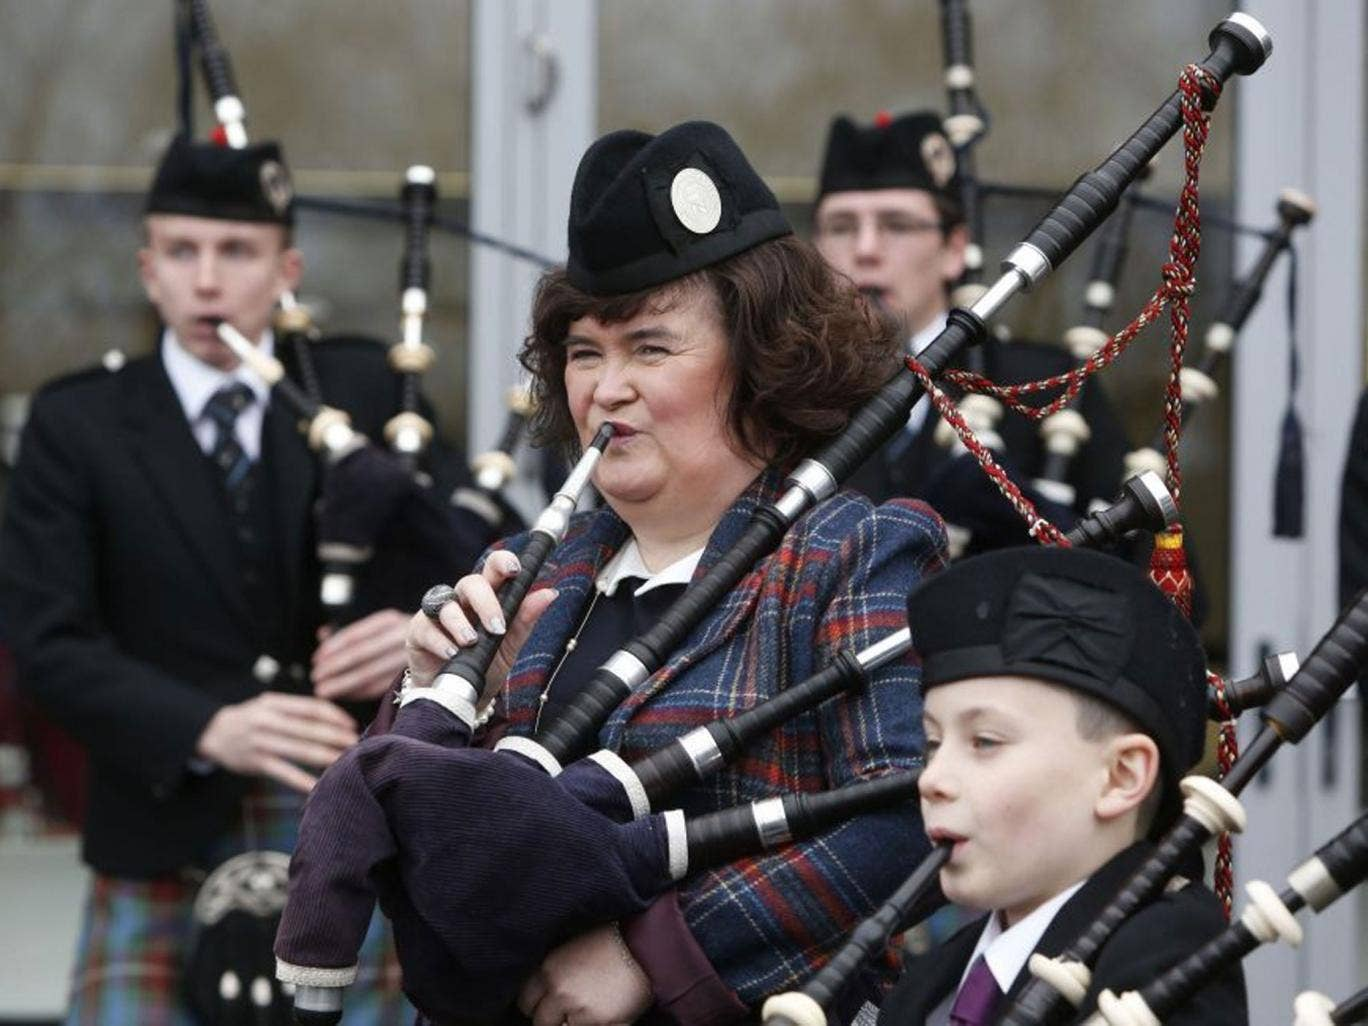 Scottish singer Susan Boyle will perform at the Commonwealth Games opening ceremony in Glasgow